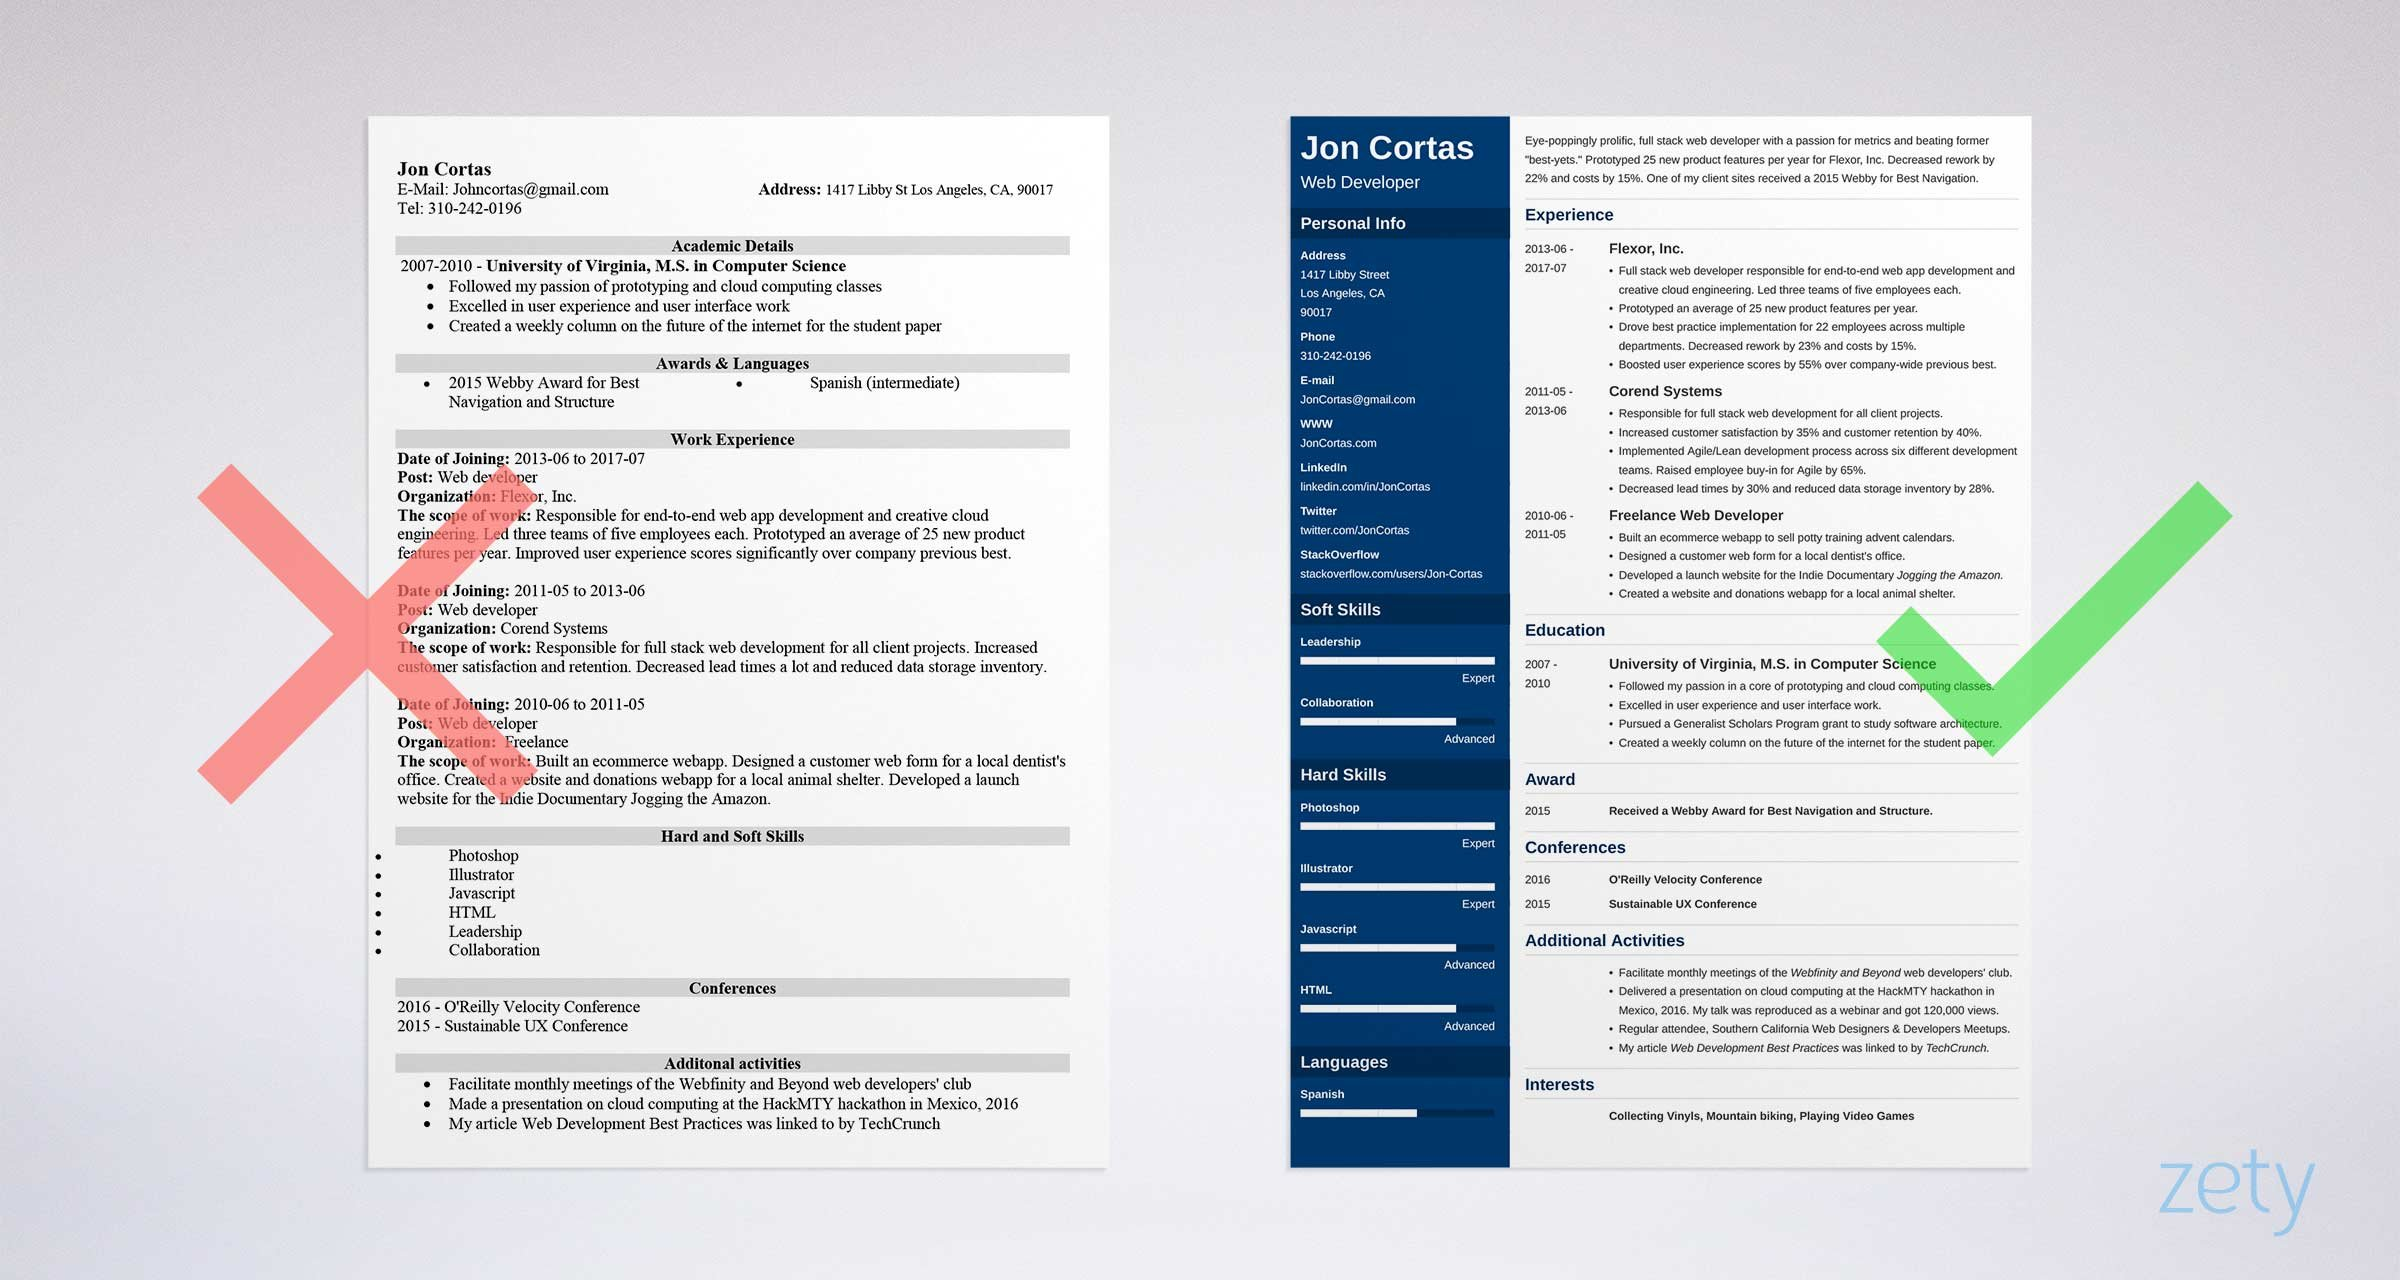 should resume one and to make it fit or two ideal length for web developer mwd field Resume One Page Or Two Page Resume